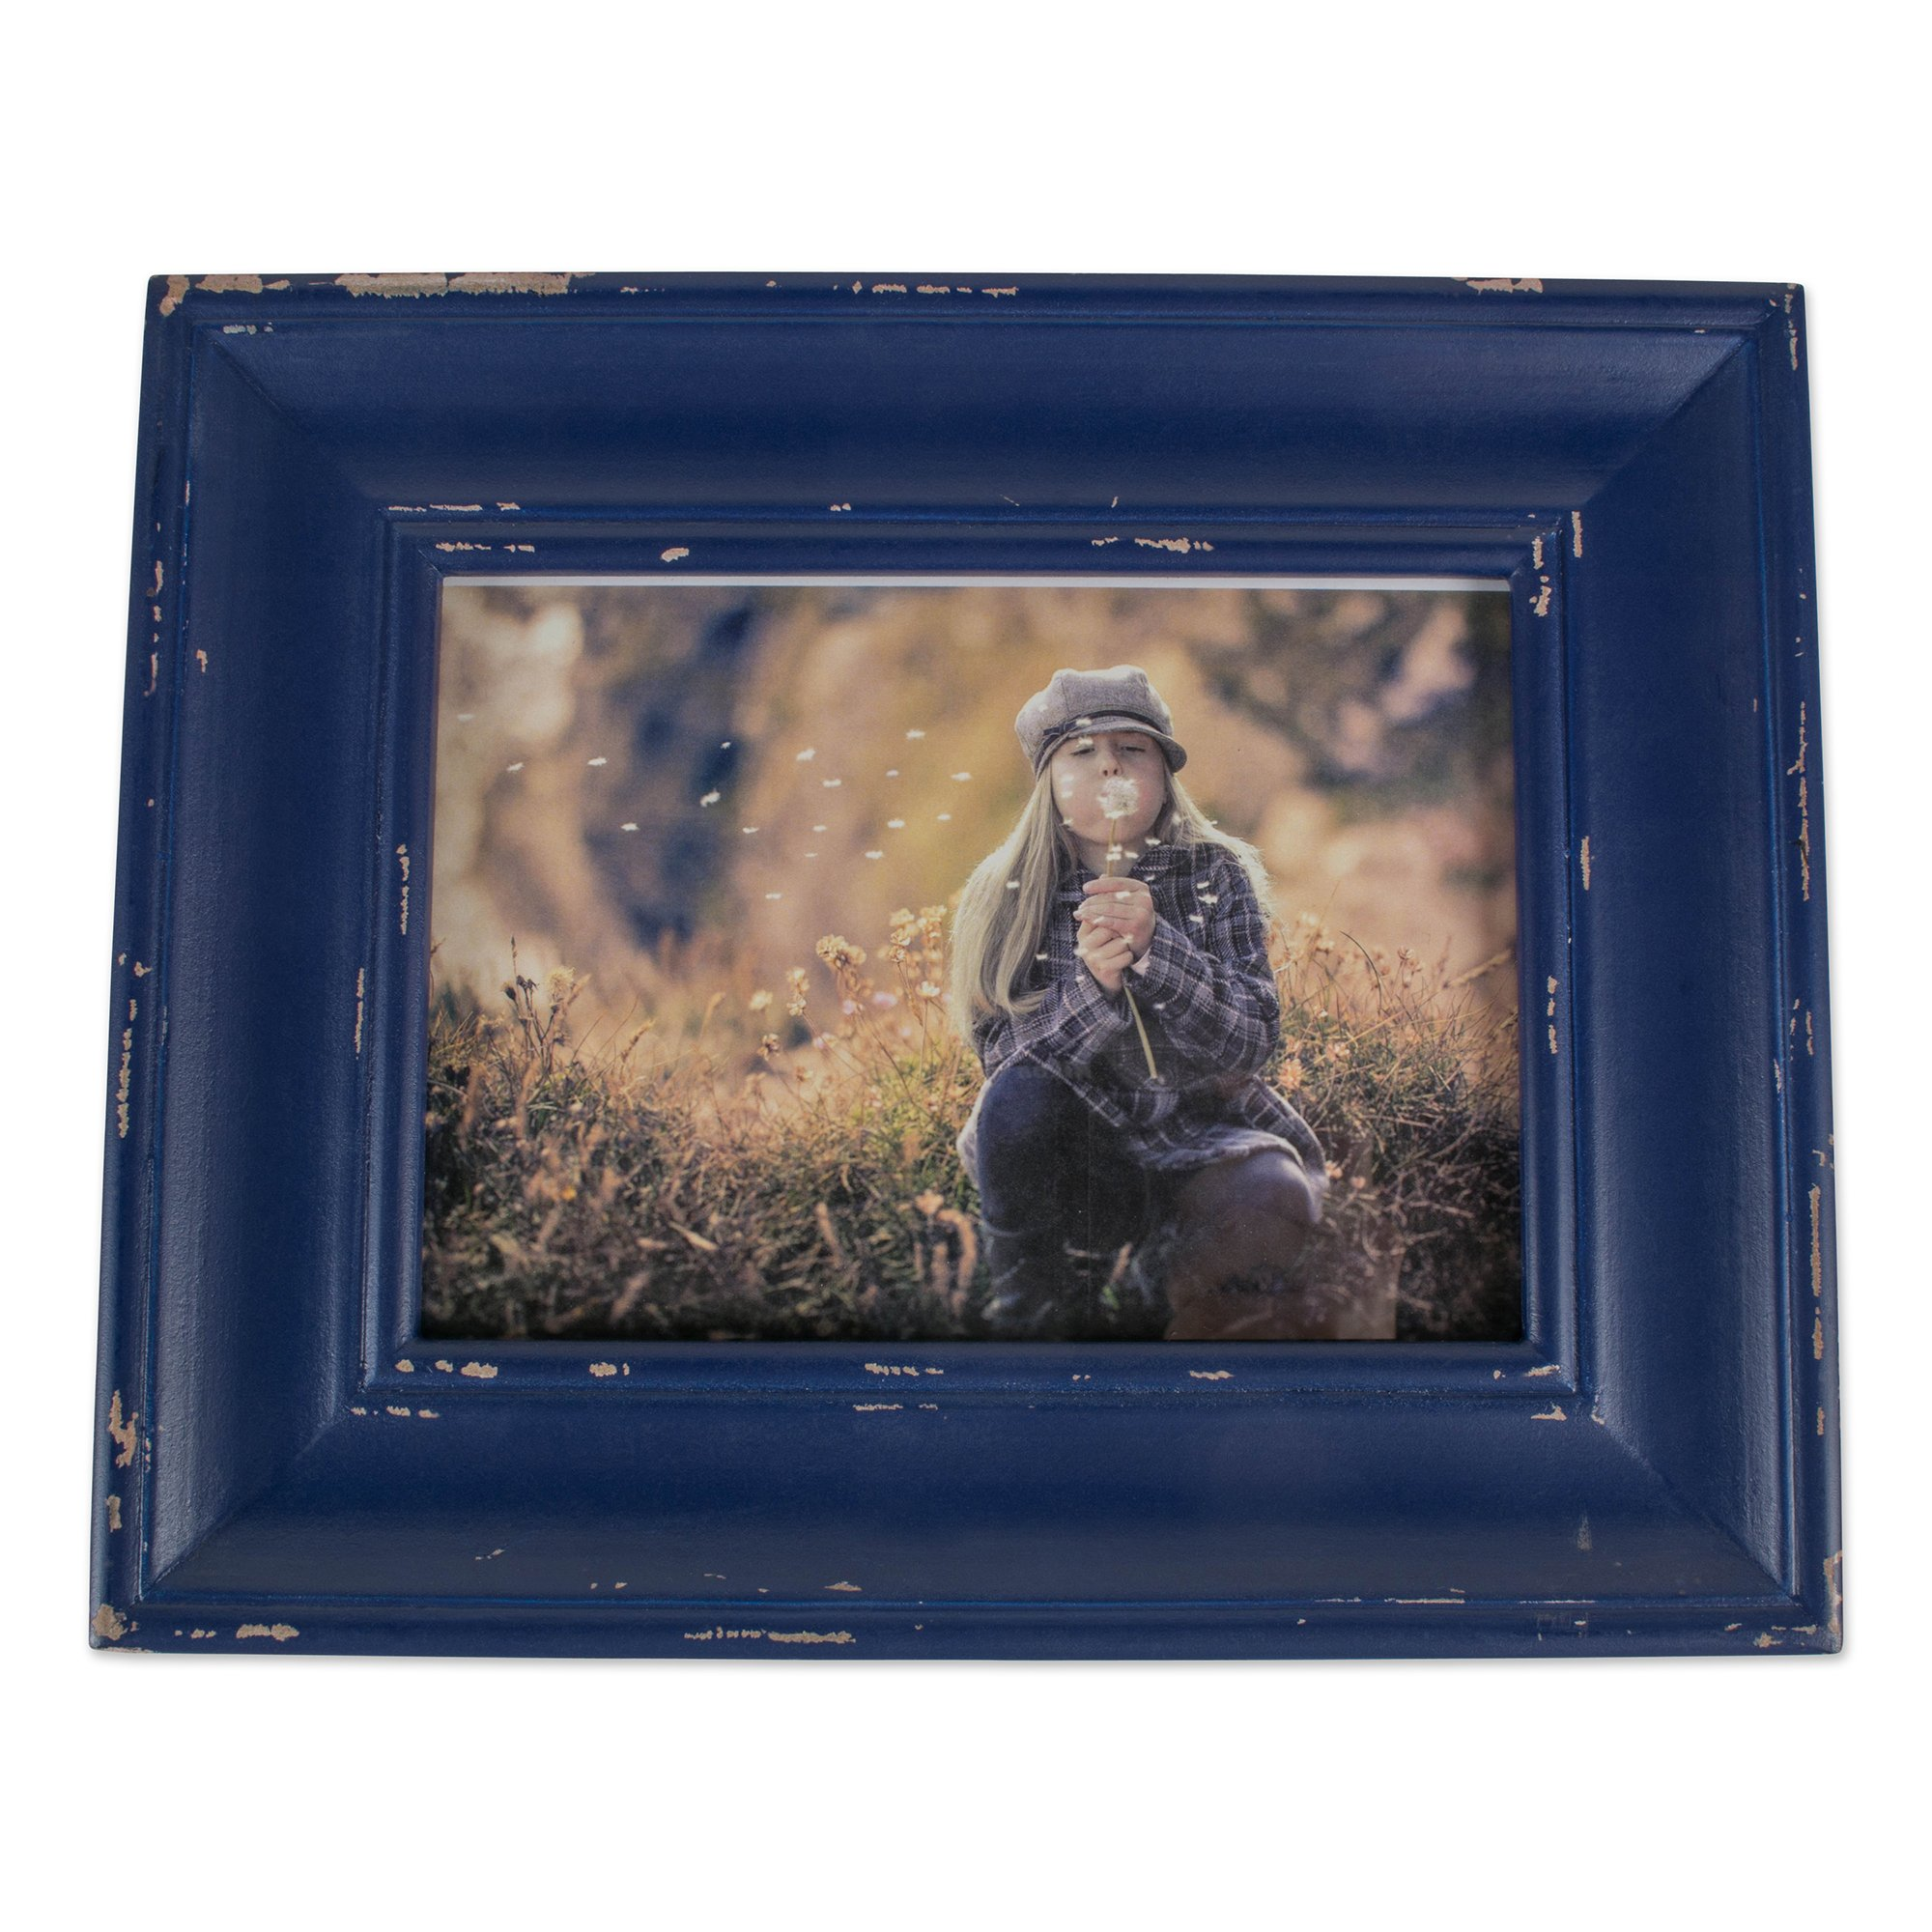 Home Traditions Z02190 Rustic Farmhouse Distressed Wooden Picture Frame for Wall Hanging or Desk Use, 8x10 Inch, Navy